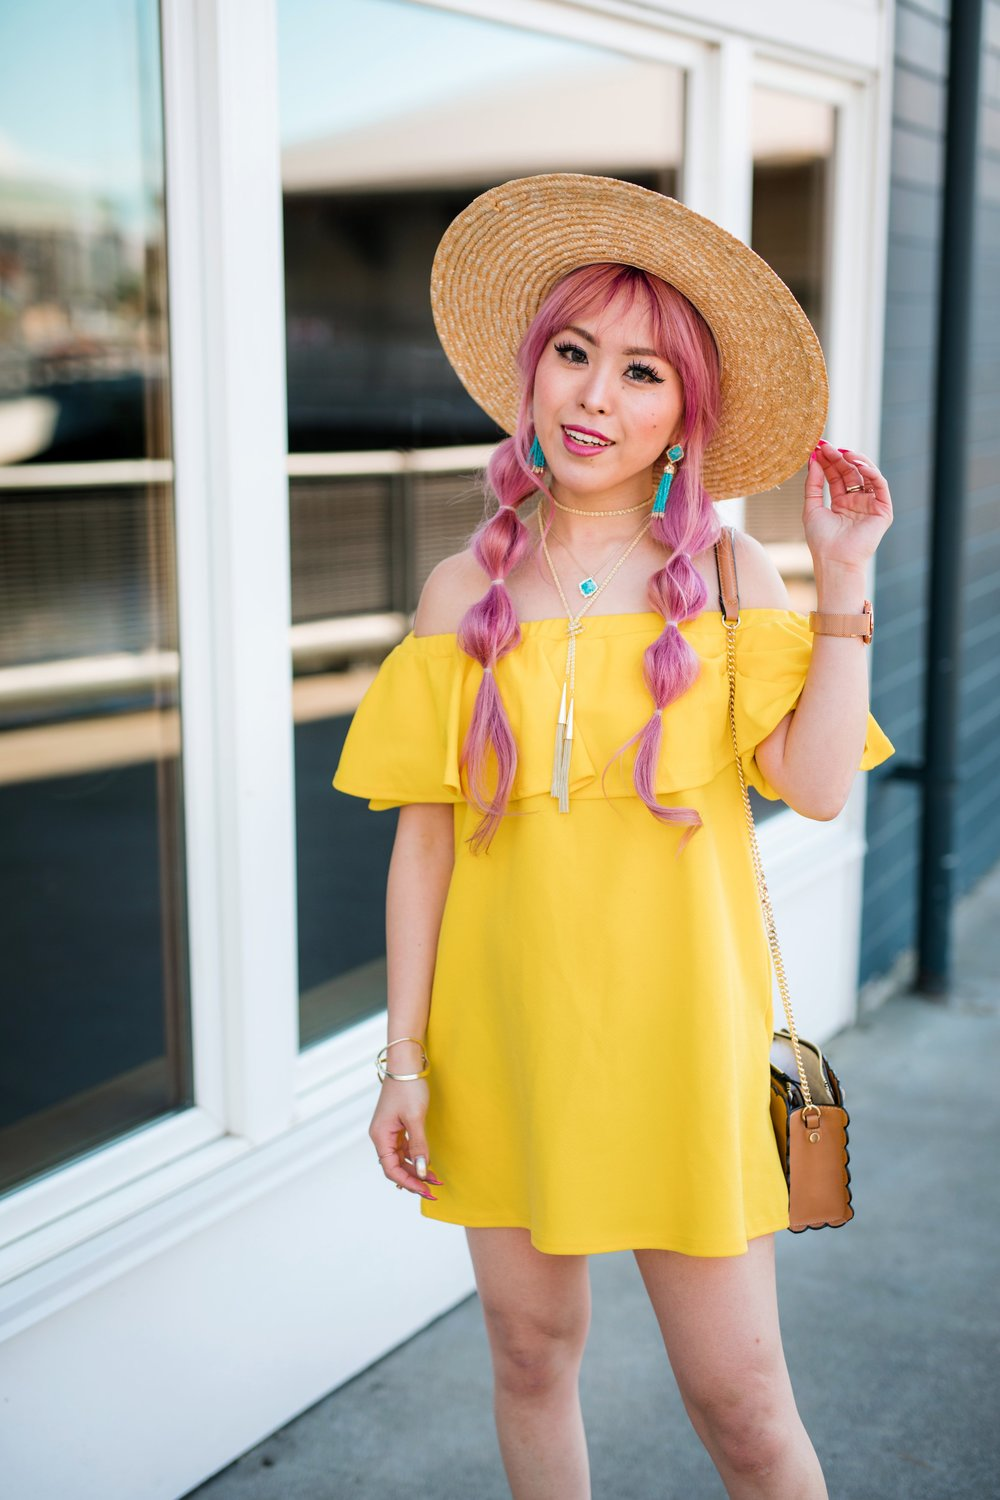 Lack Of Color Wide brim Straw Hat_Boohoo Yellow Off the shoulder dress via ASOS_ZARA CROSSBODY BAG WITH FLOWERS_Shoe Dazzle Lace up Wedge Sandals_Kendra Scott MISHA STATEMENT EARRINGS IN BRONZE VEINED TURQUOISE_KACEY LONG PENDANT NECKLACE IN BRONZE VEINED TURQUOISE_Phara Necklace In Gold_Stella Cuff Bracelet In Gold_Pink Hair_bubble pigtails hairstyle_Aikas Love Closet_Seattle Fashion Style Blogger_Japanese 8